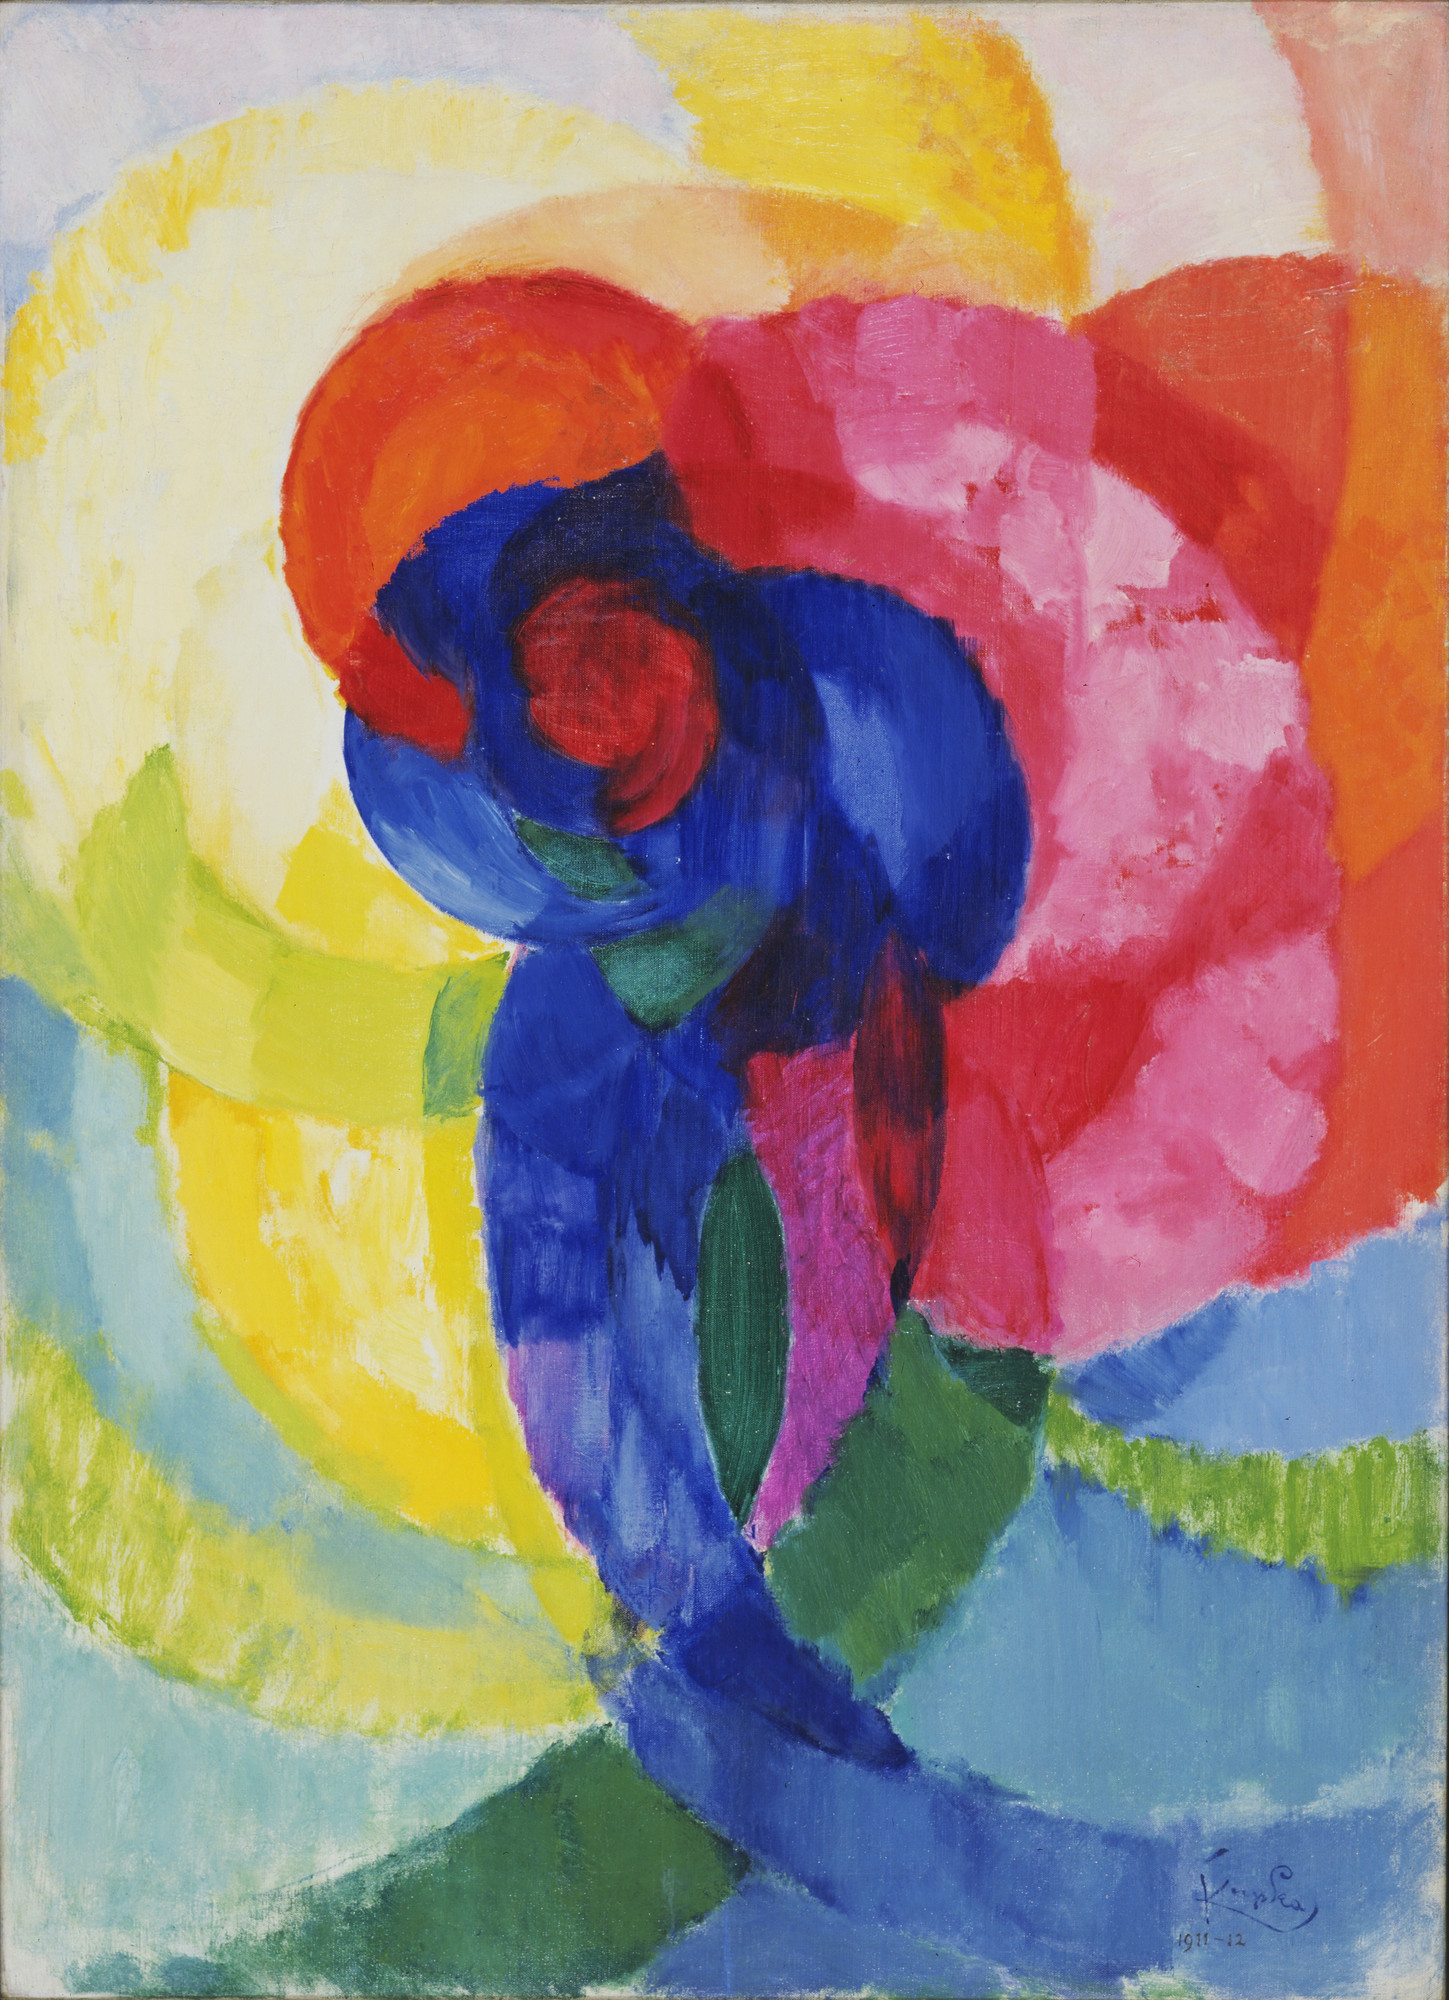 František Kupka. Red and Blue Disks. 1911? (dated on painting 1911-12)